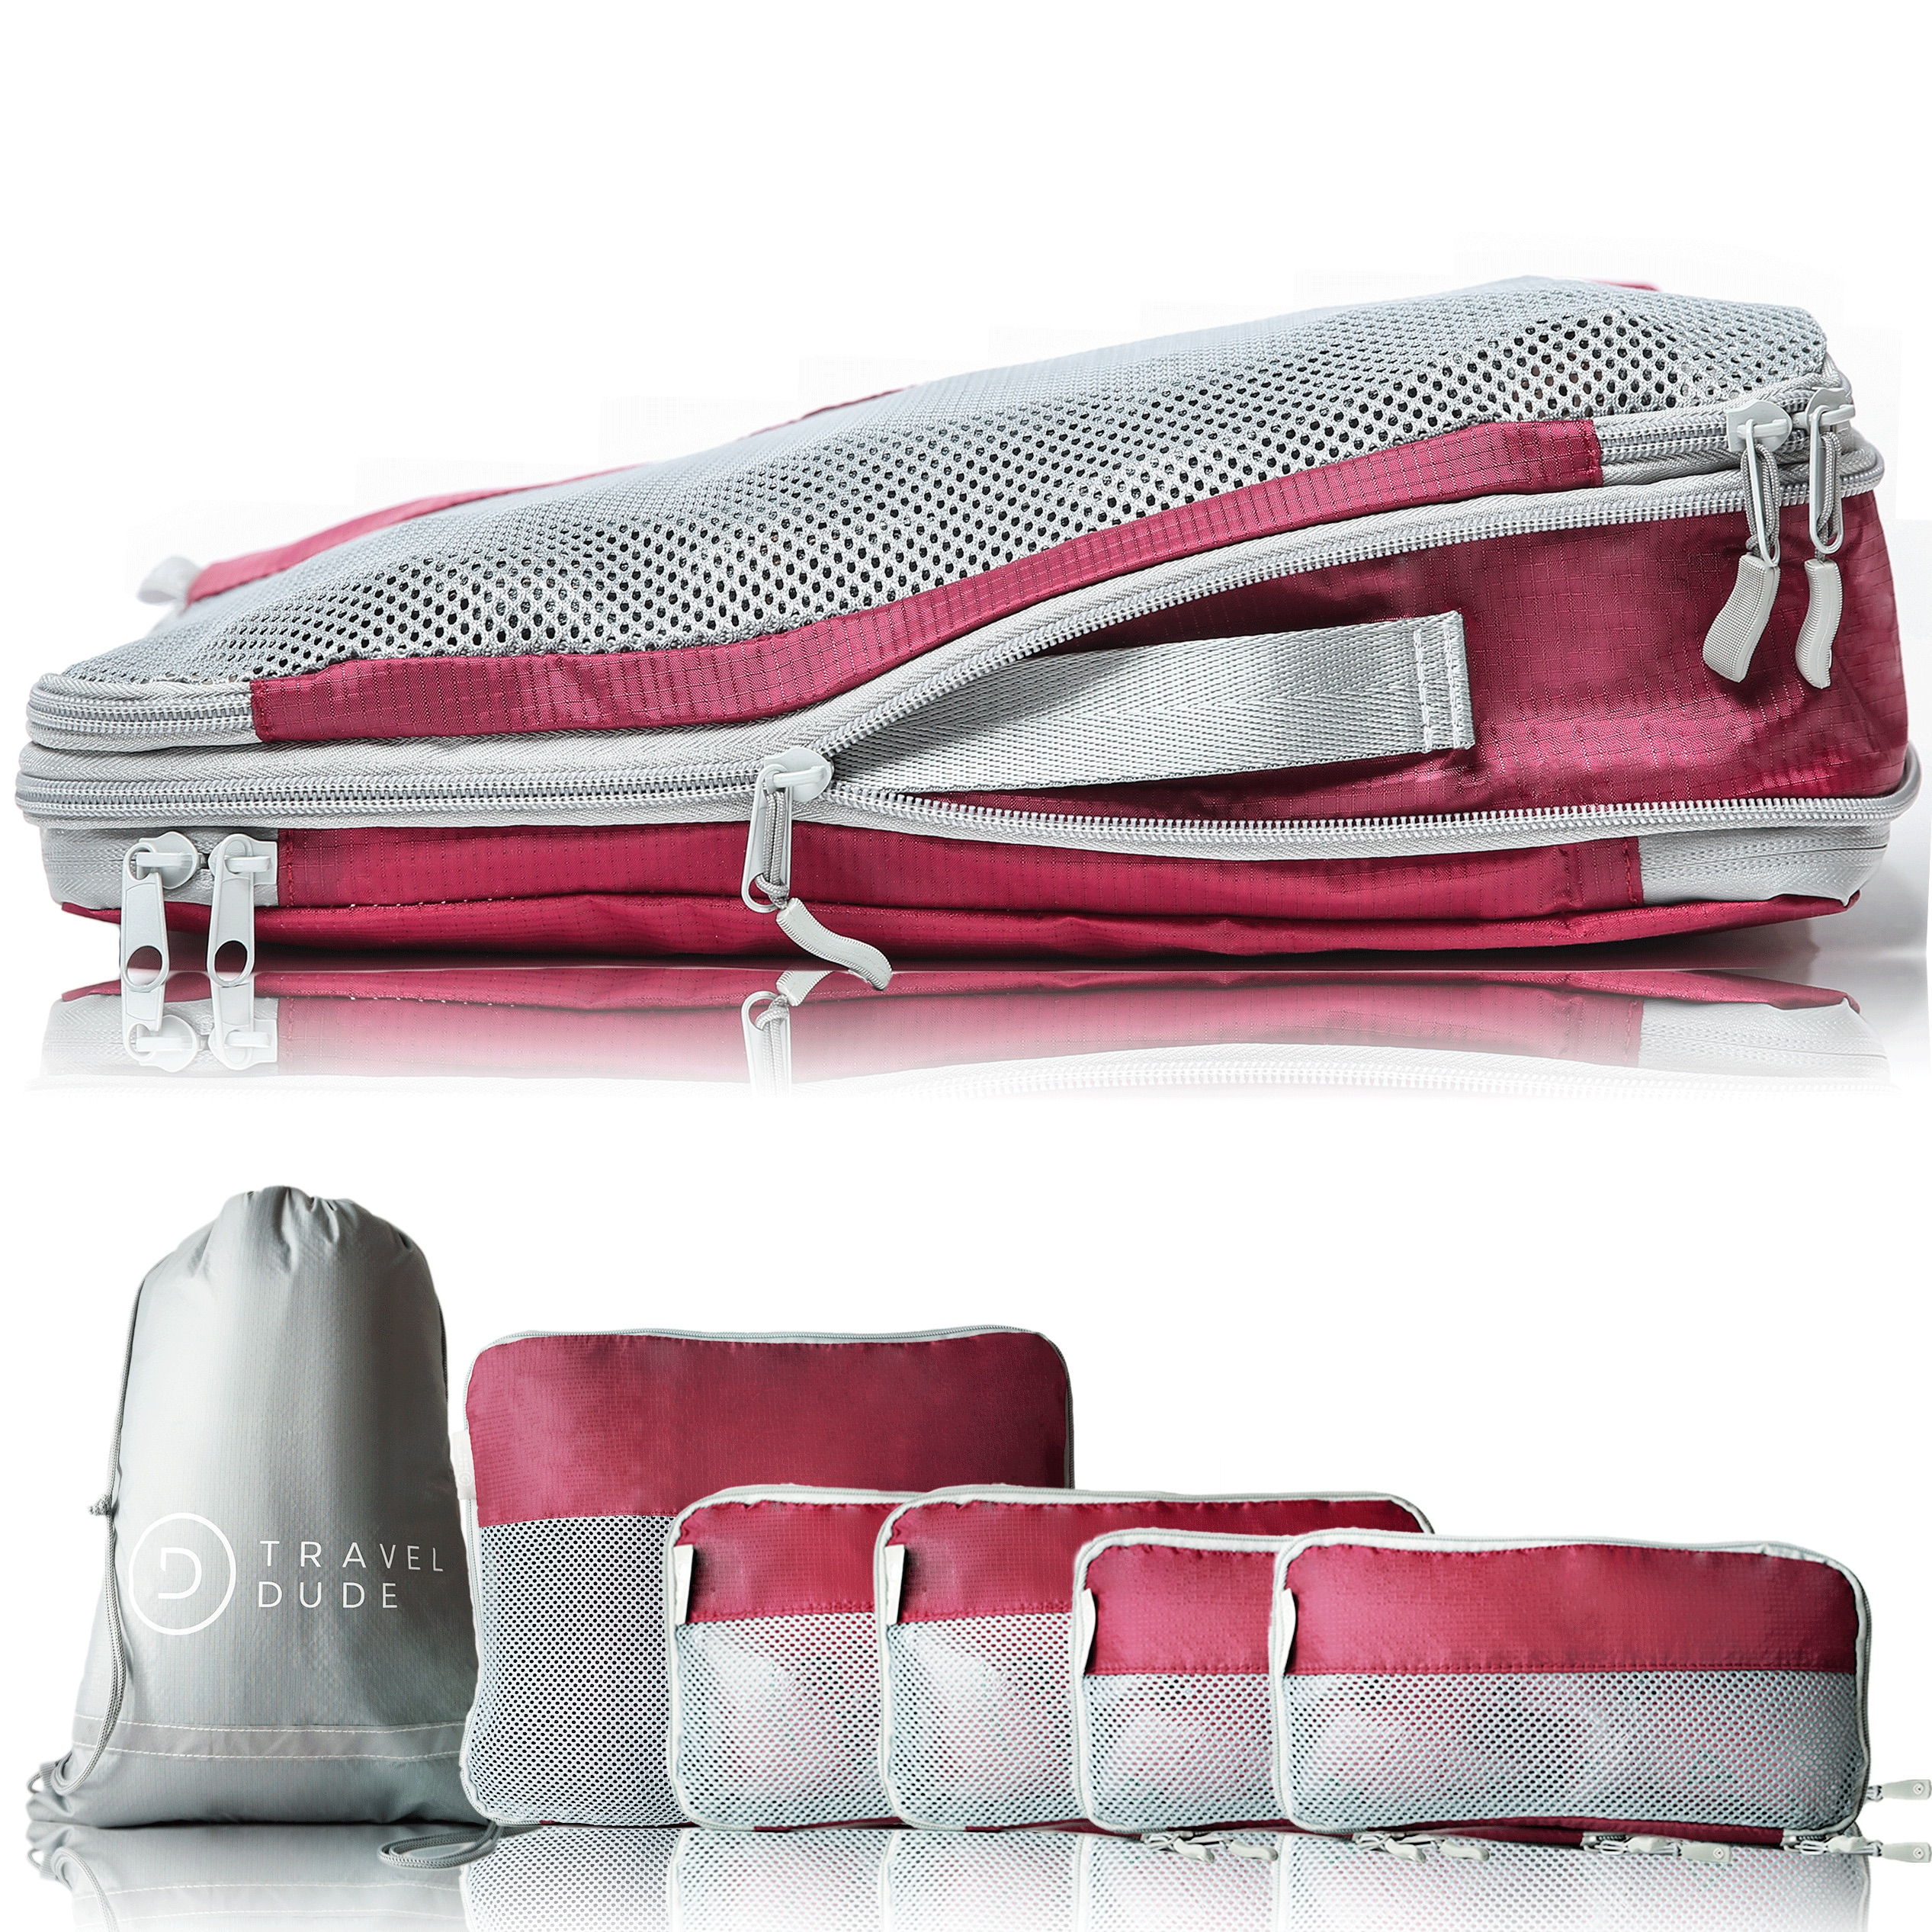 min 7-Piece Packing Cube Set Travel Luggage Packing Organizers with Shoe Bag